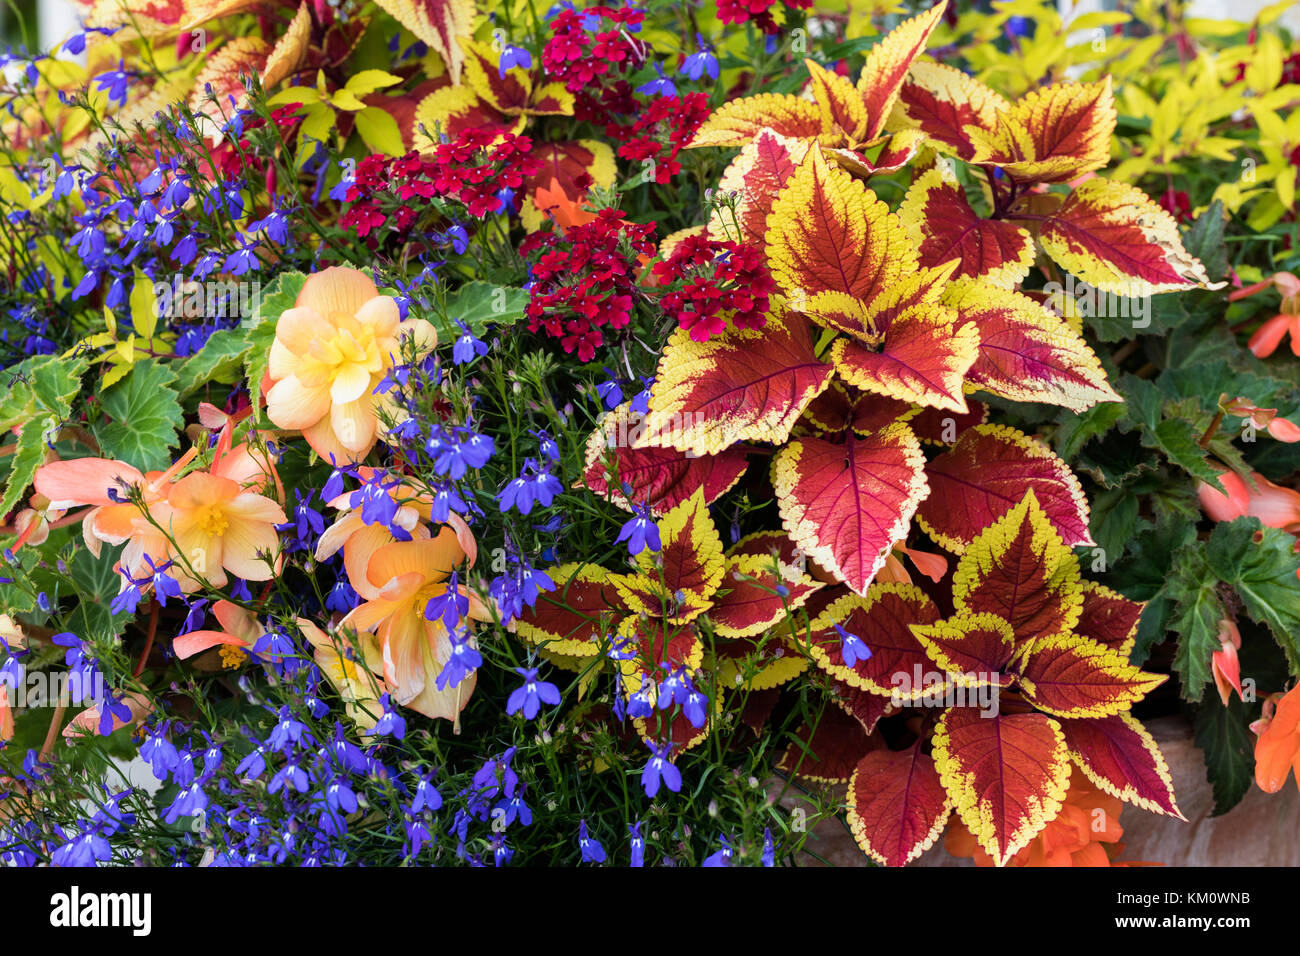 Close up of a very colourful display of  summer flowers and foliage planted in a container - Stock Image